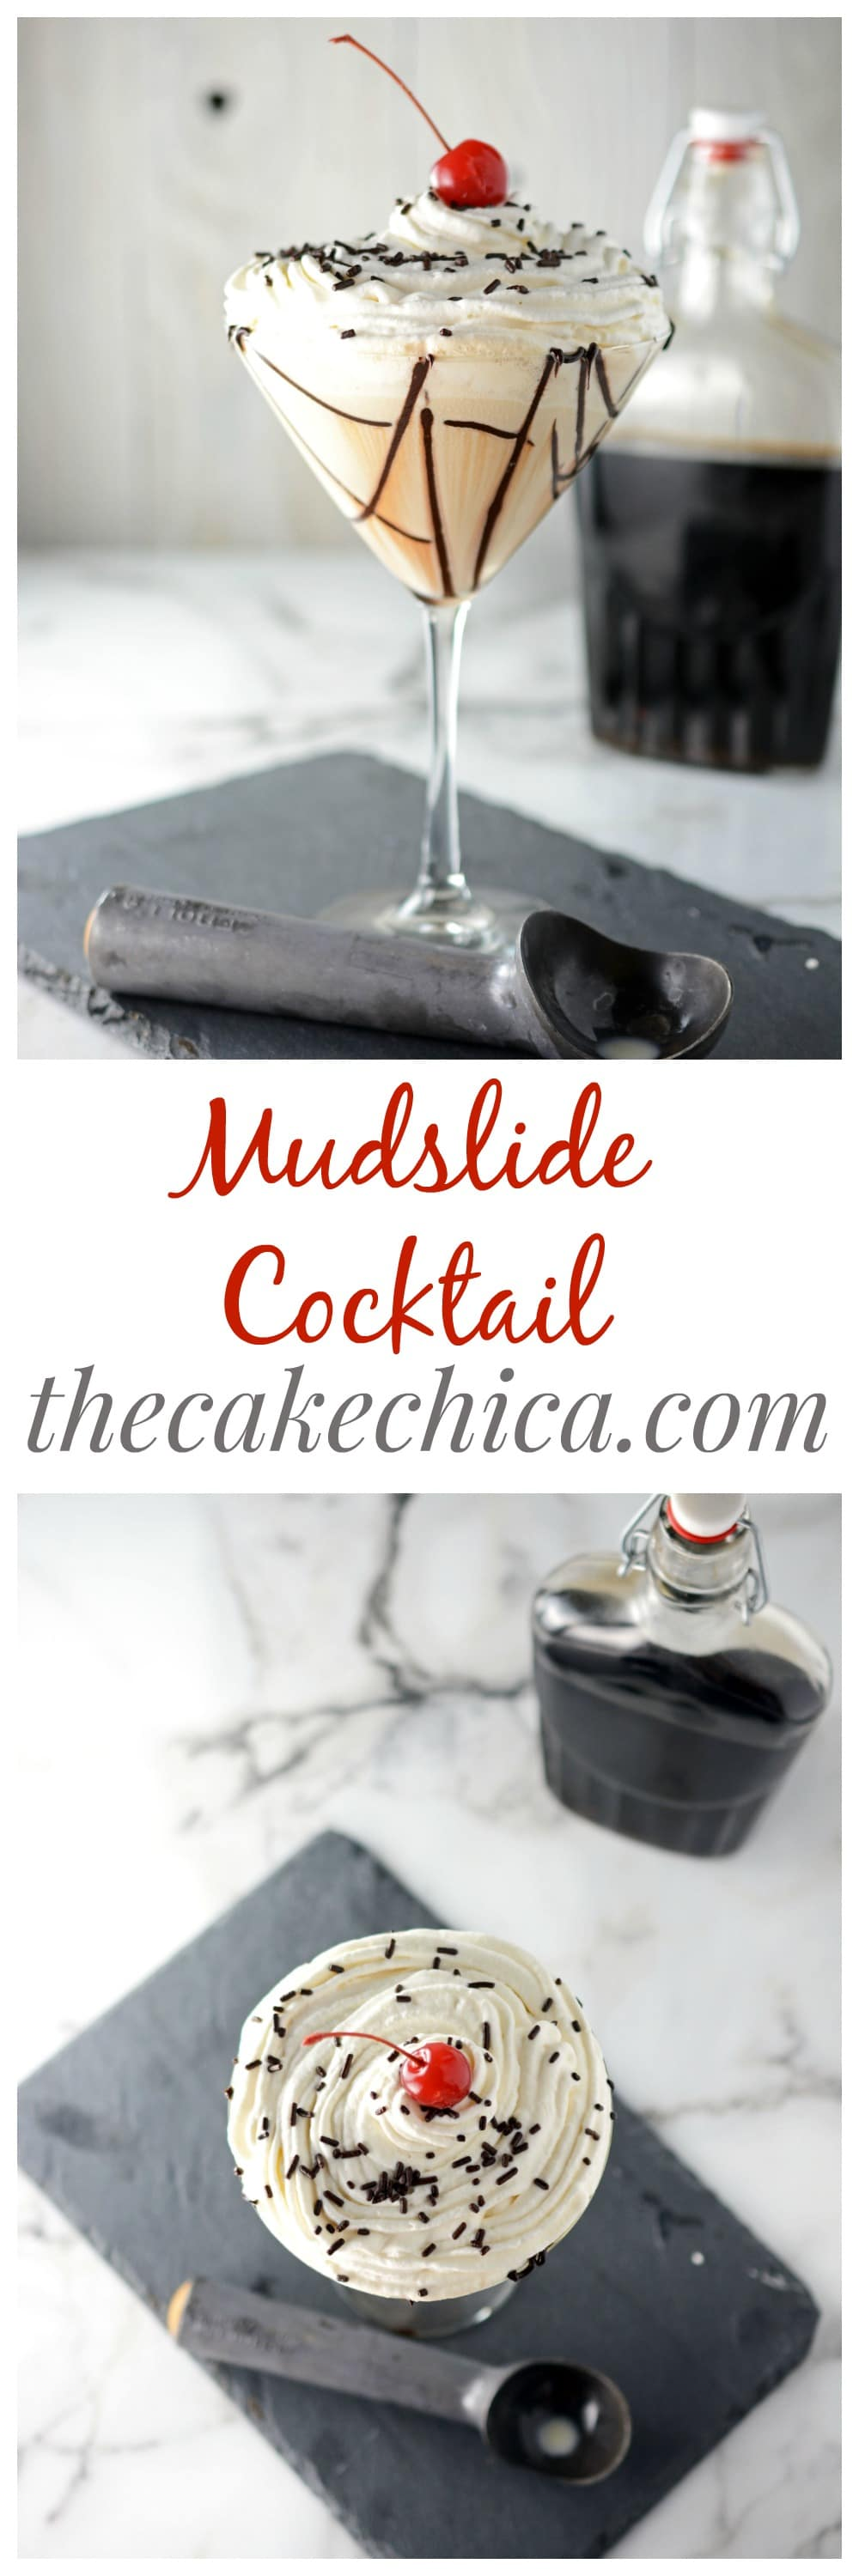 Mudslide for Pinterest